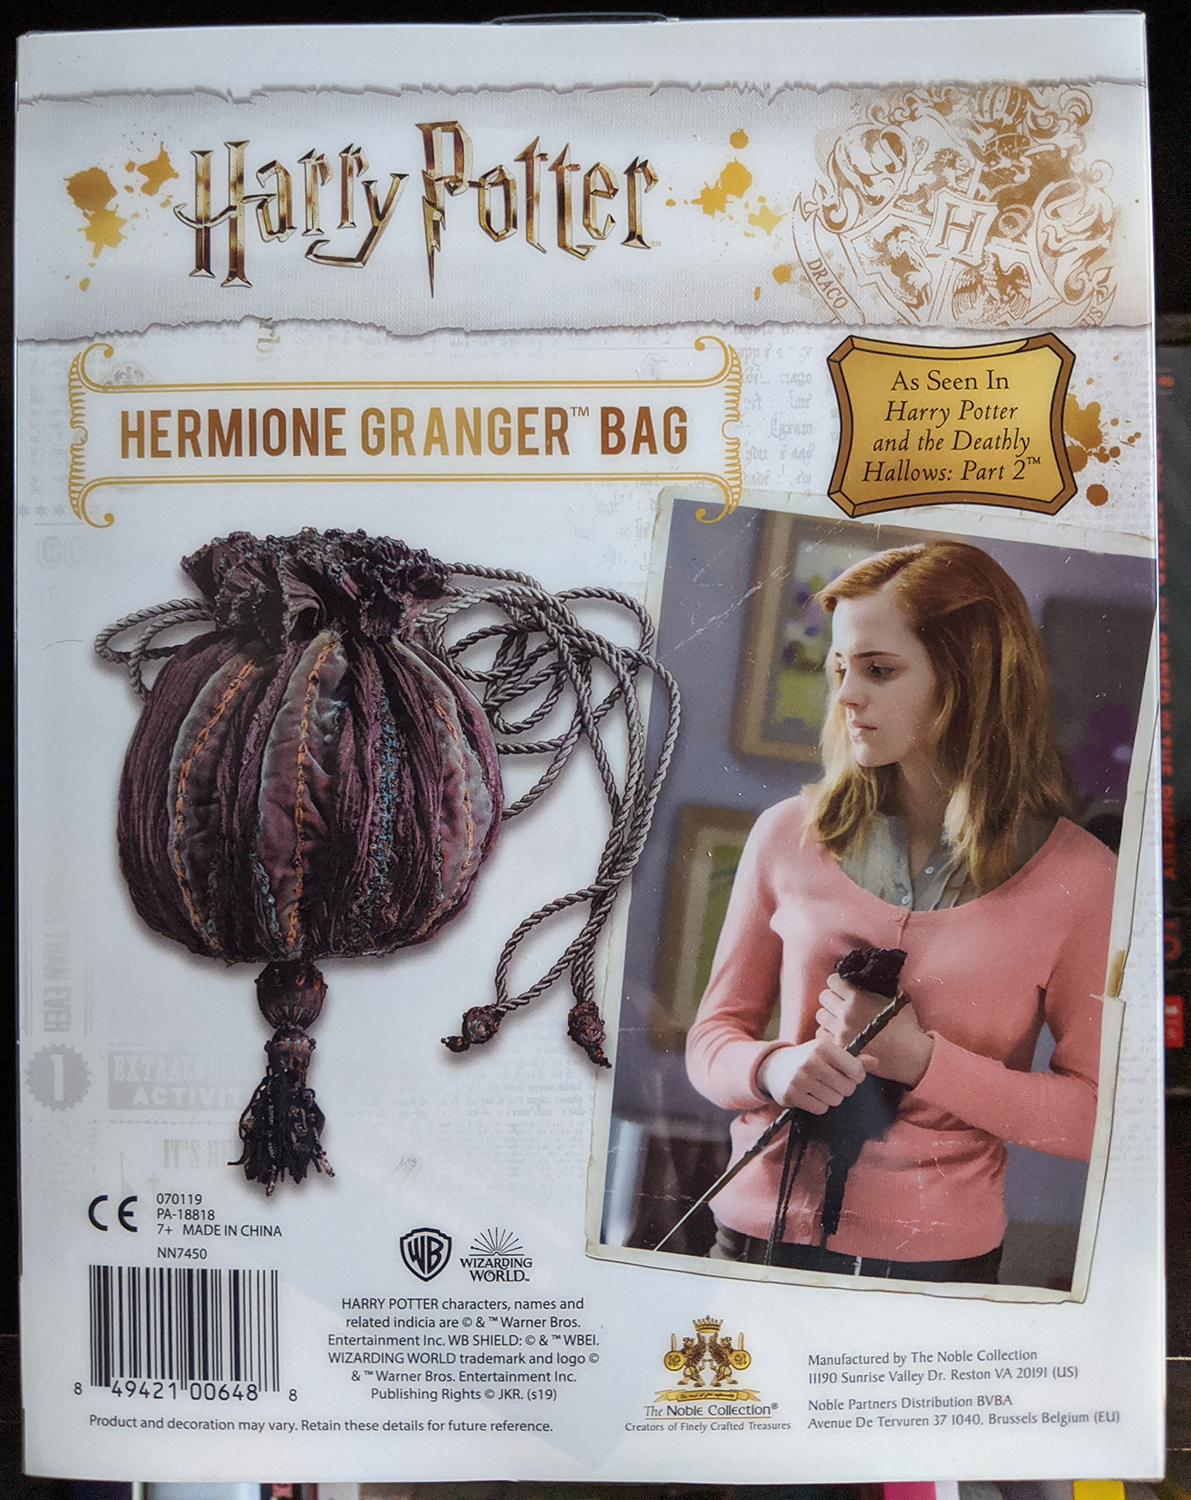 Hermione's bag packaging, back